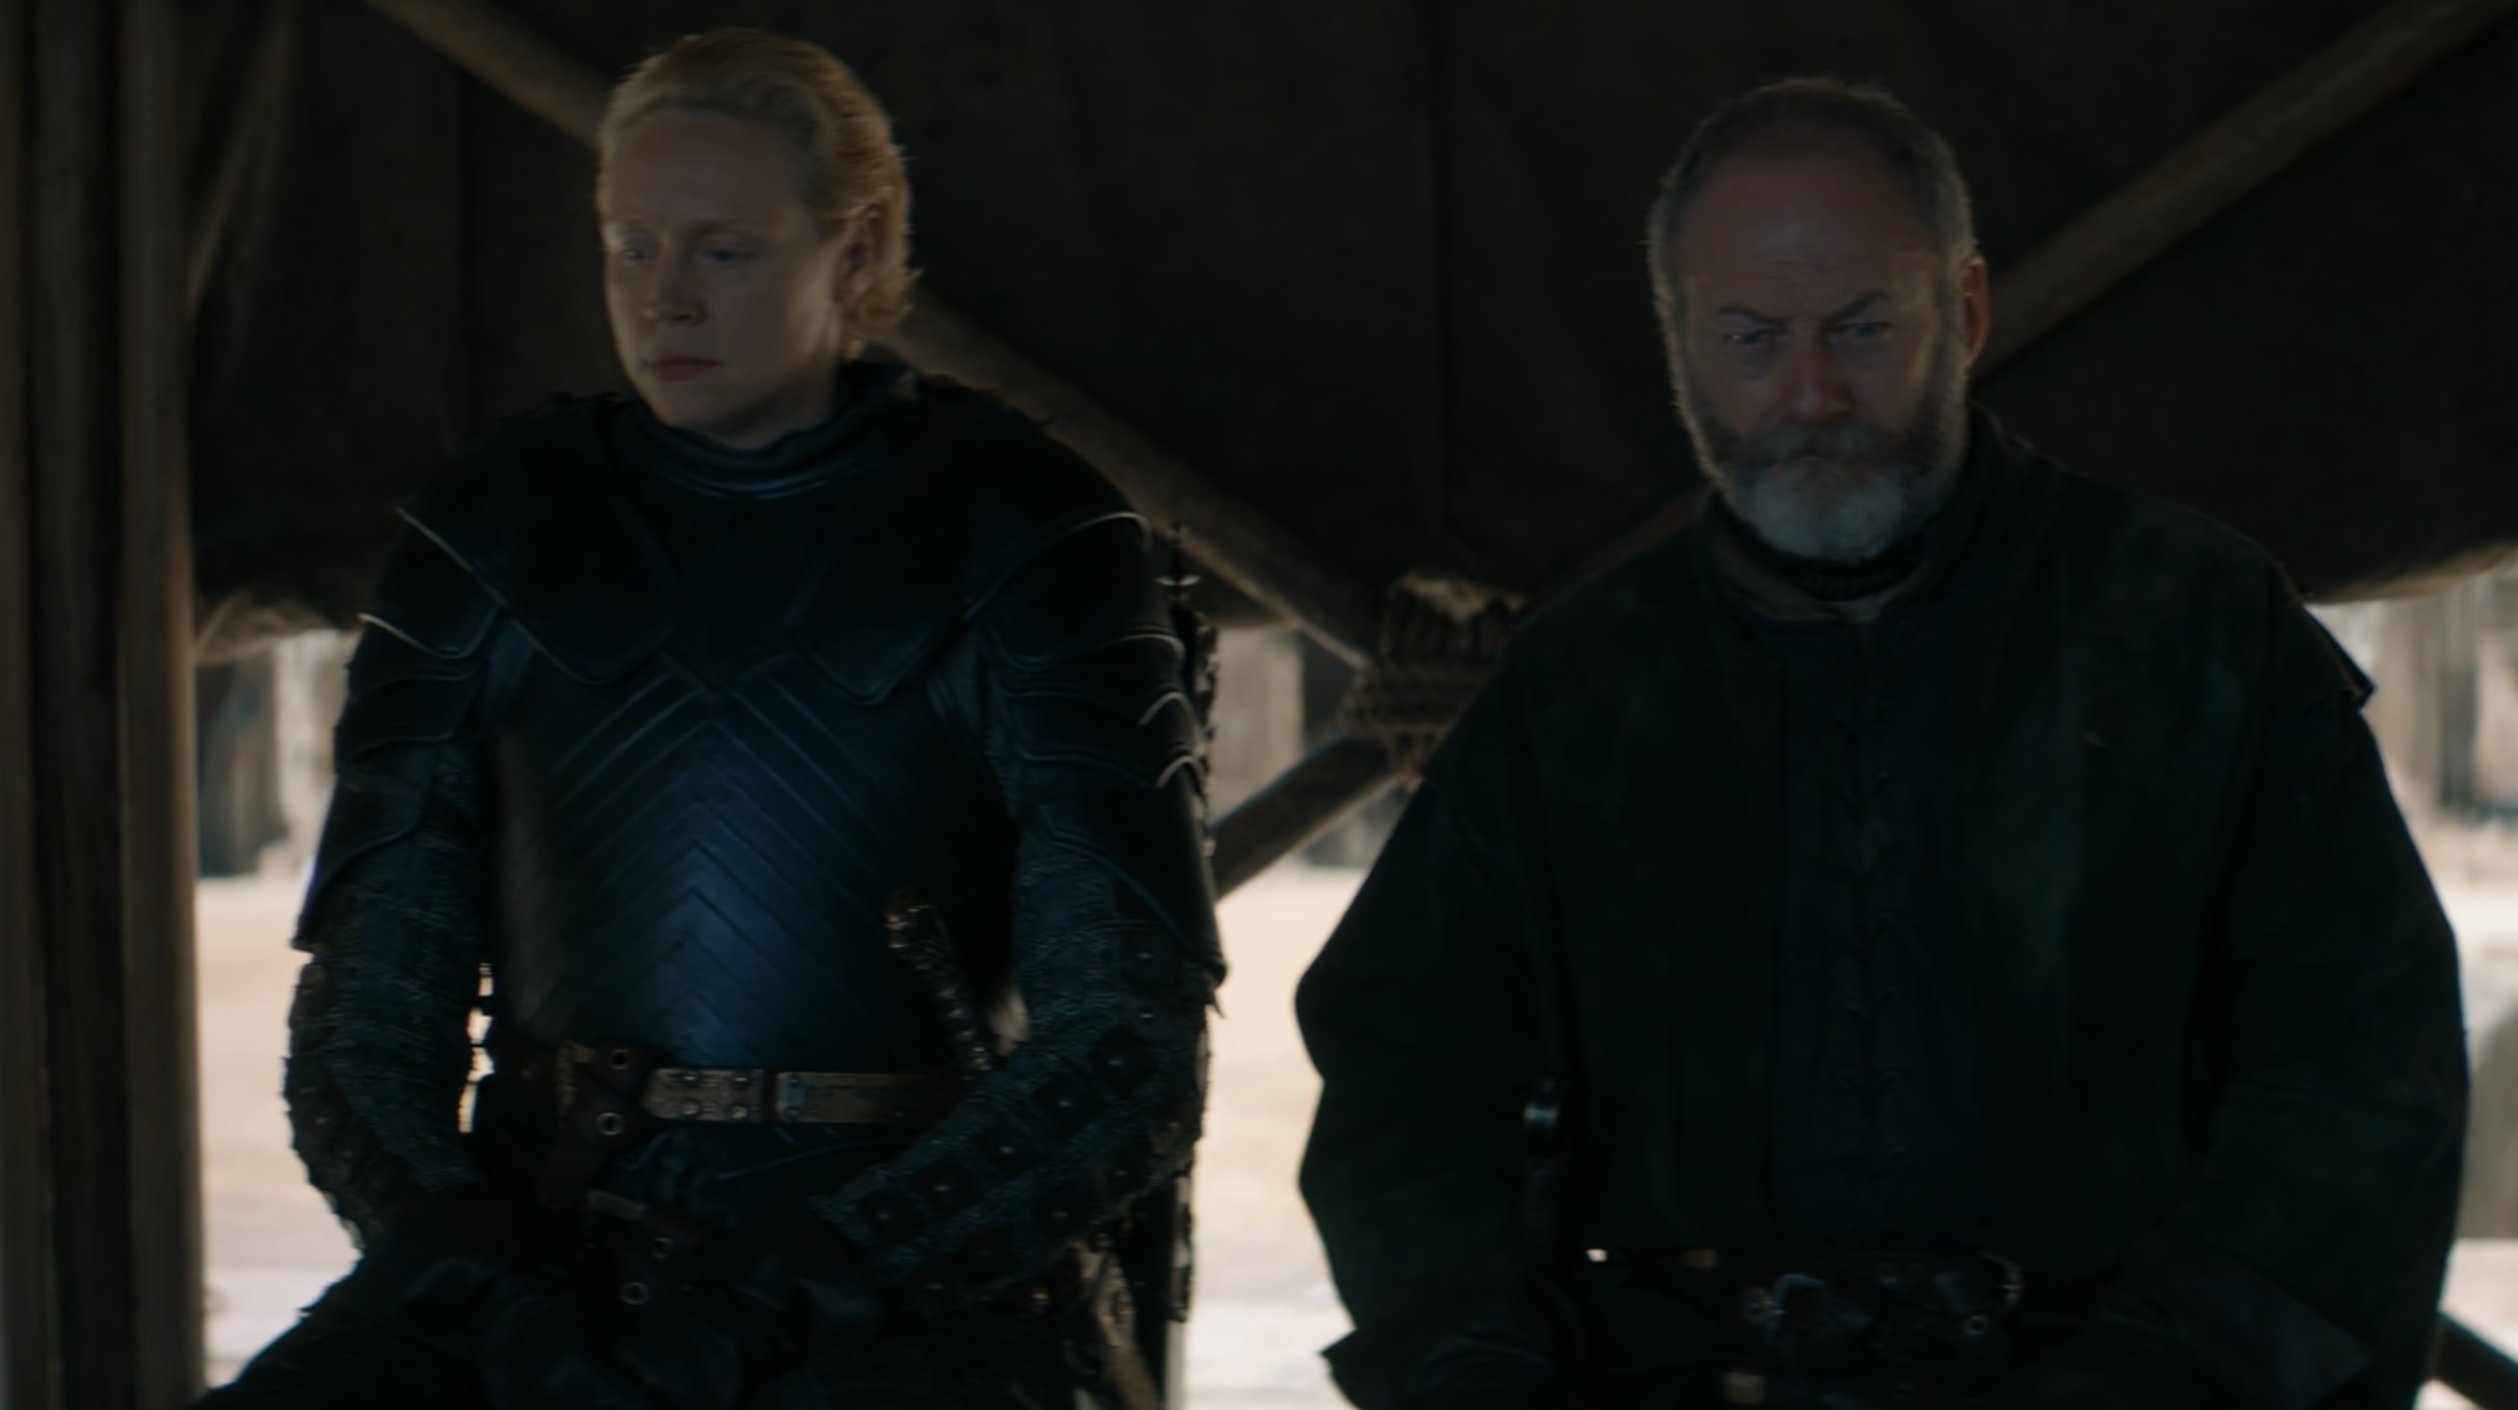 Game of Thrones reunion brienne davos